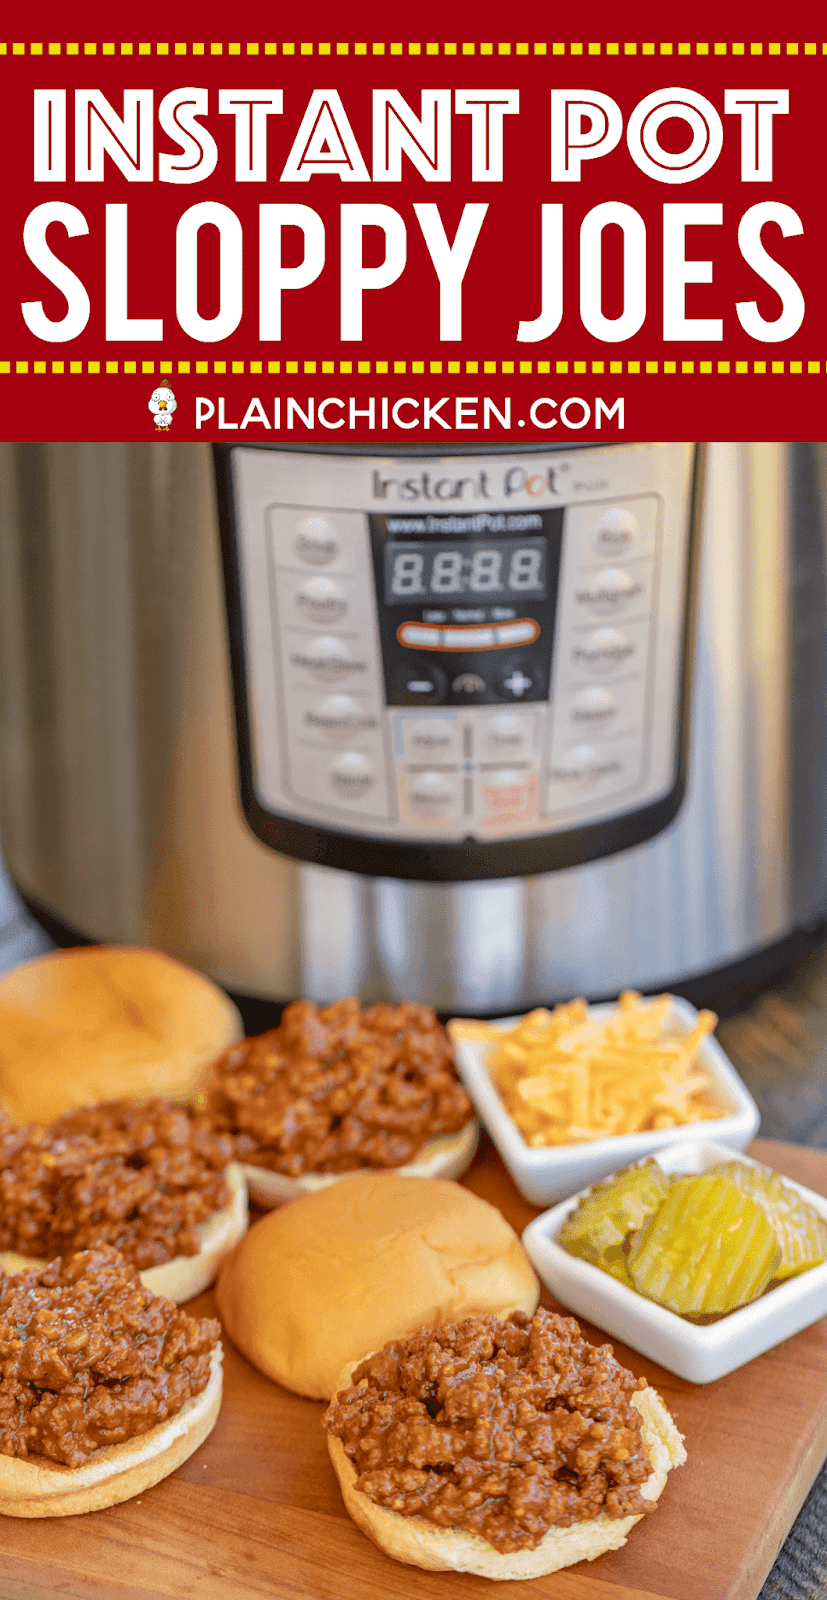 Instant Pot Sloppy Joes - seriously delicious! Hands down THE BEST Sloppy Joes we've ever eaten! Ground beef, garlic, tomato sauce, BBQ sauce, cider vinegar, brown sugar, dijon mustard, Worcestershire sauce, chili powder and onion powder. So simple to make in the electric pressure cooker. Serve on slider buns with pickles, cheese and mustard. Everyone raved about these sandwiches. Even our Sloppy Joe haters cleaned their plate! YUM! #instantpot #sloppyjoe #beef #sandwich